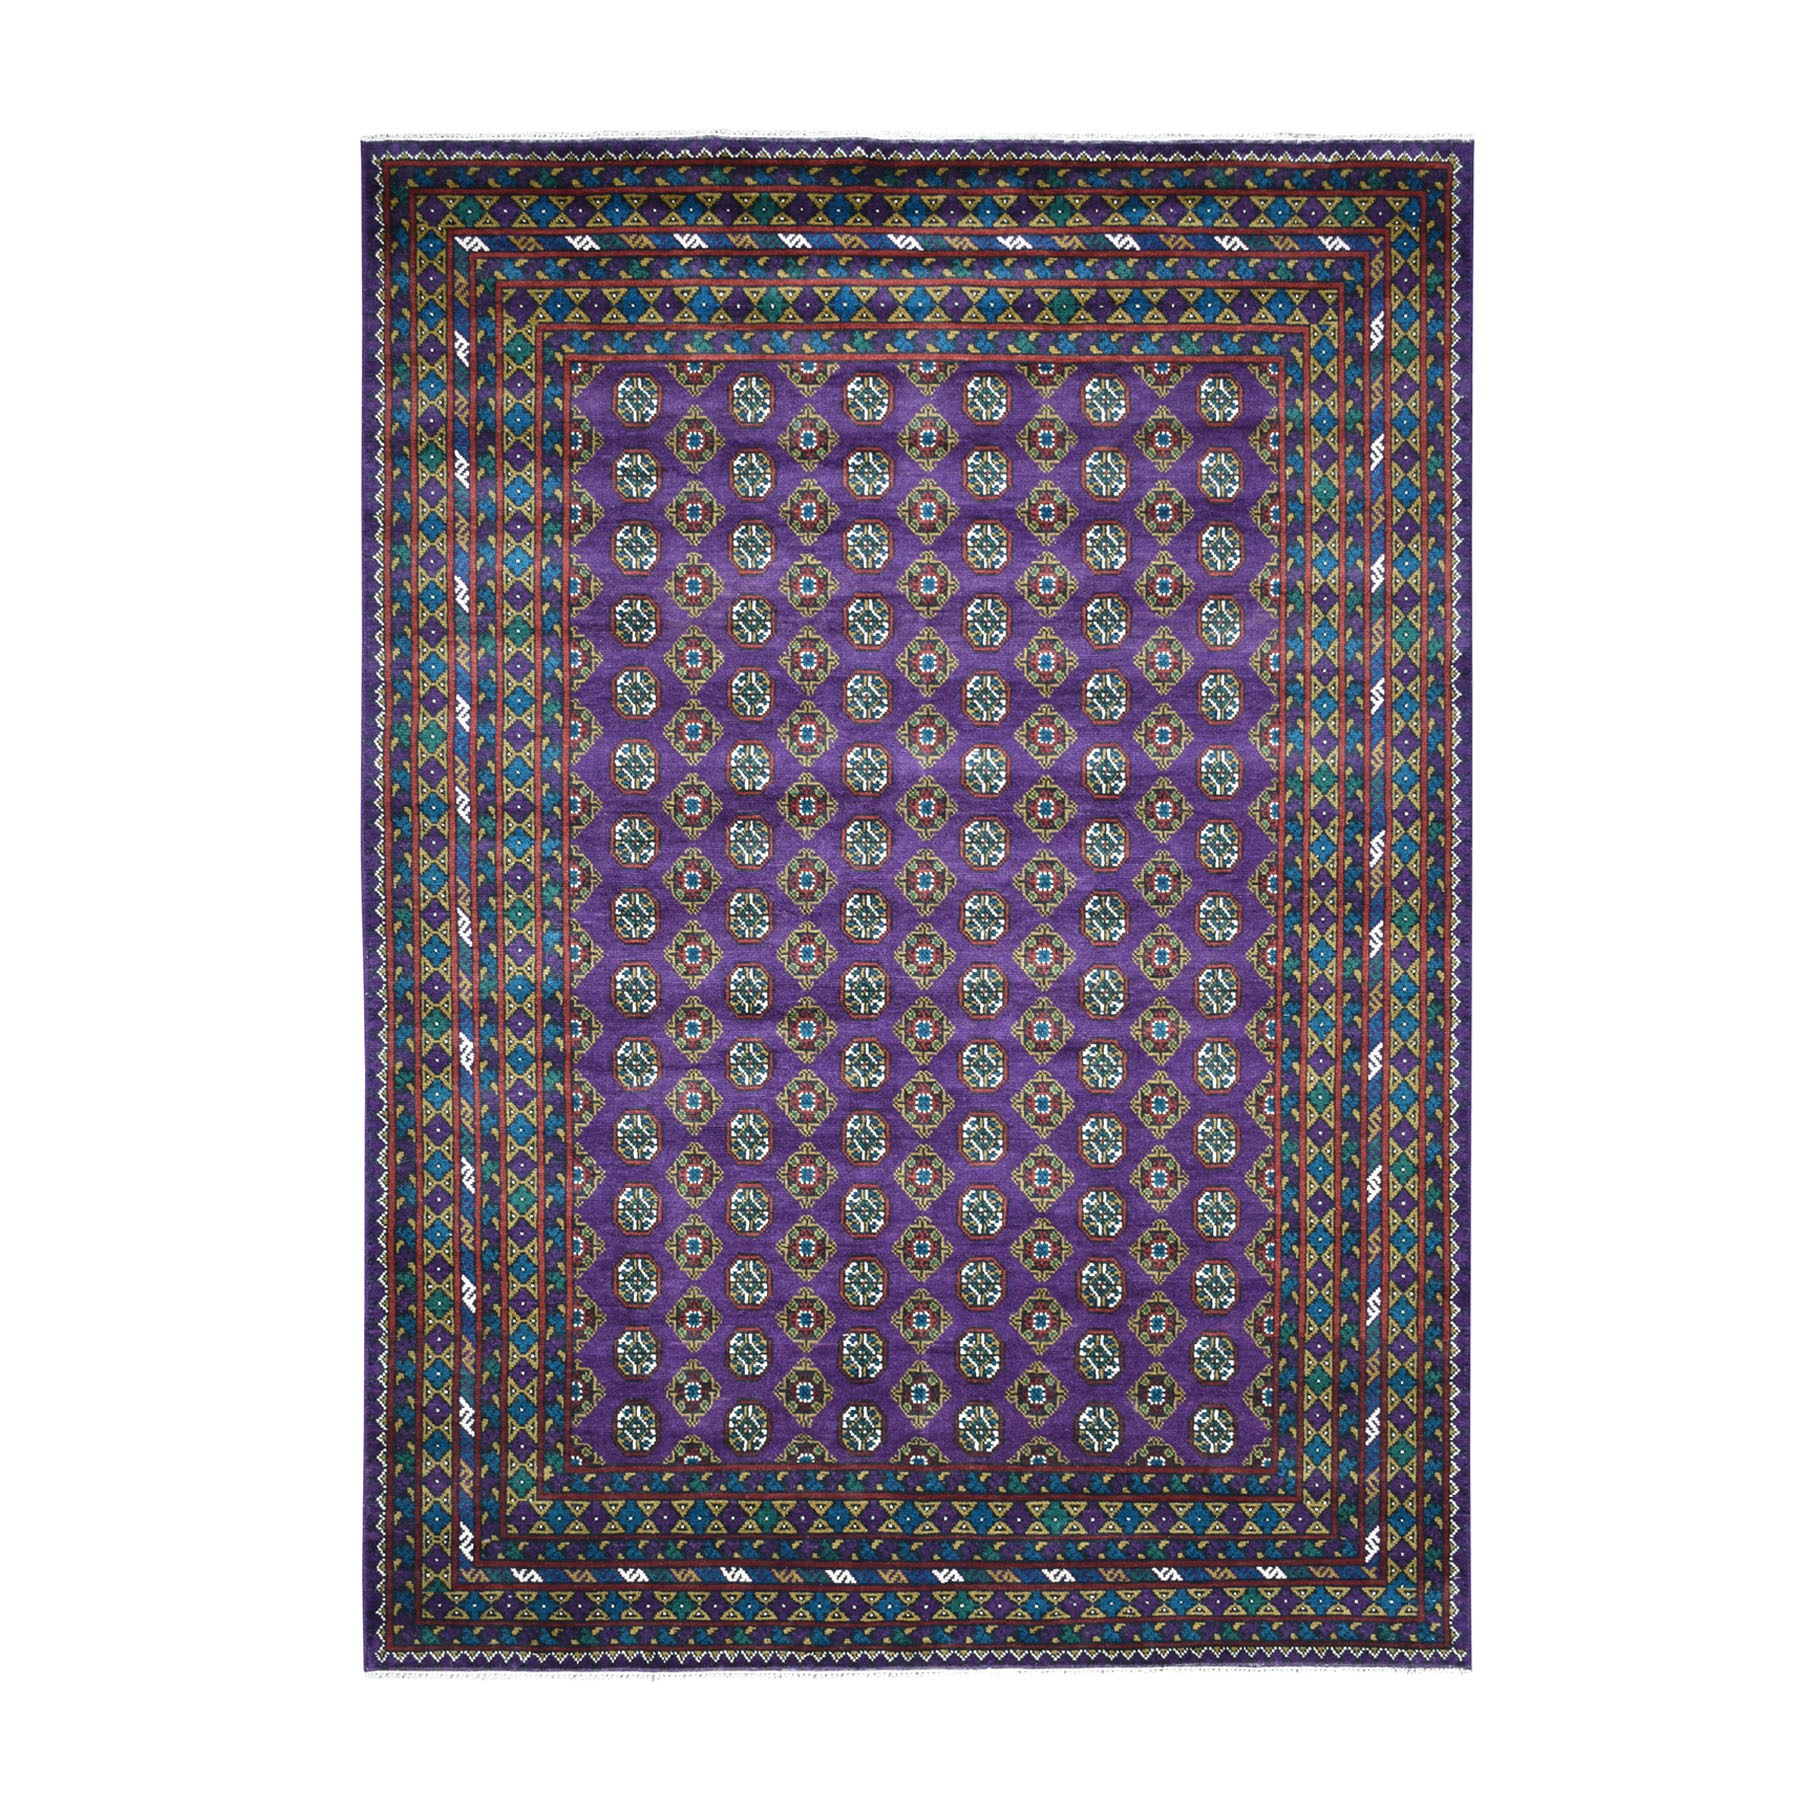 "6'7""x9'4"" Purple Colorful Afghan Baluch Hand Woven Tribal Design Pure Wool Oriental Rug"